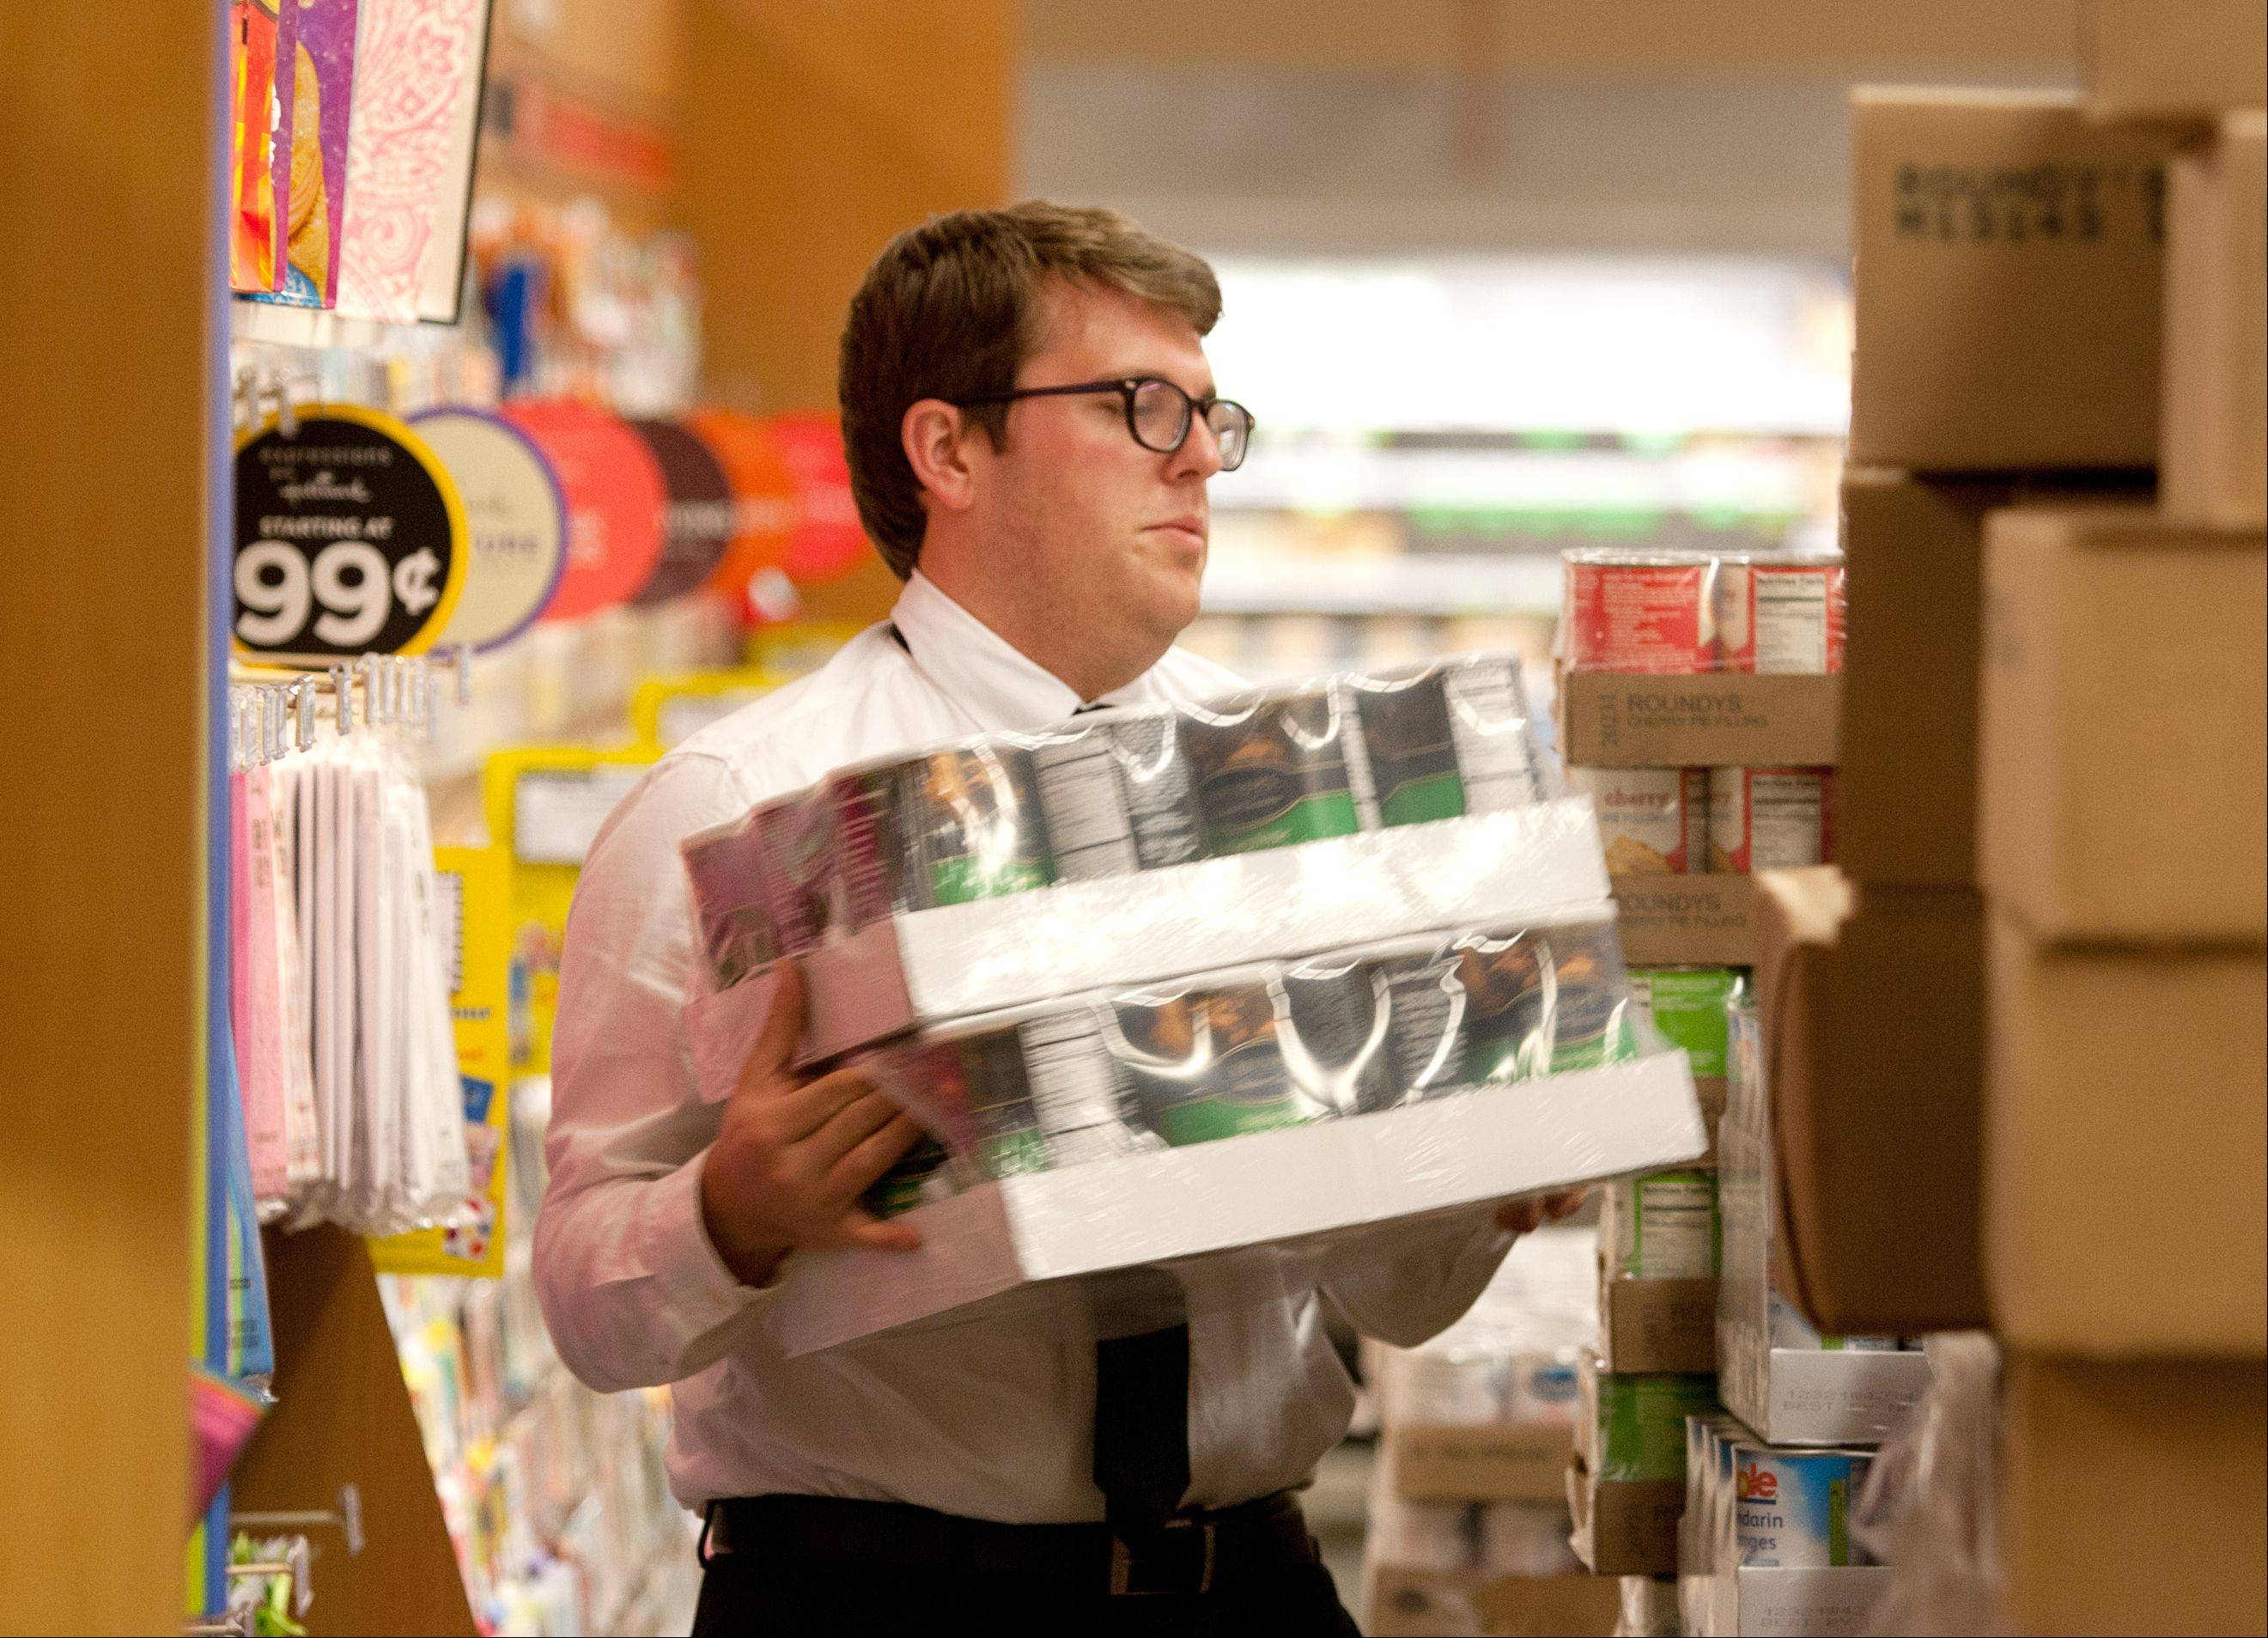 Patrick Whelan stacks canned products at Mariano's.